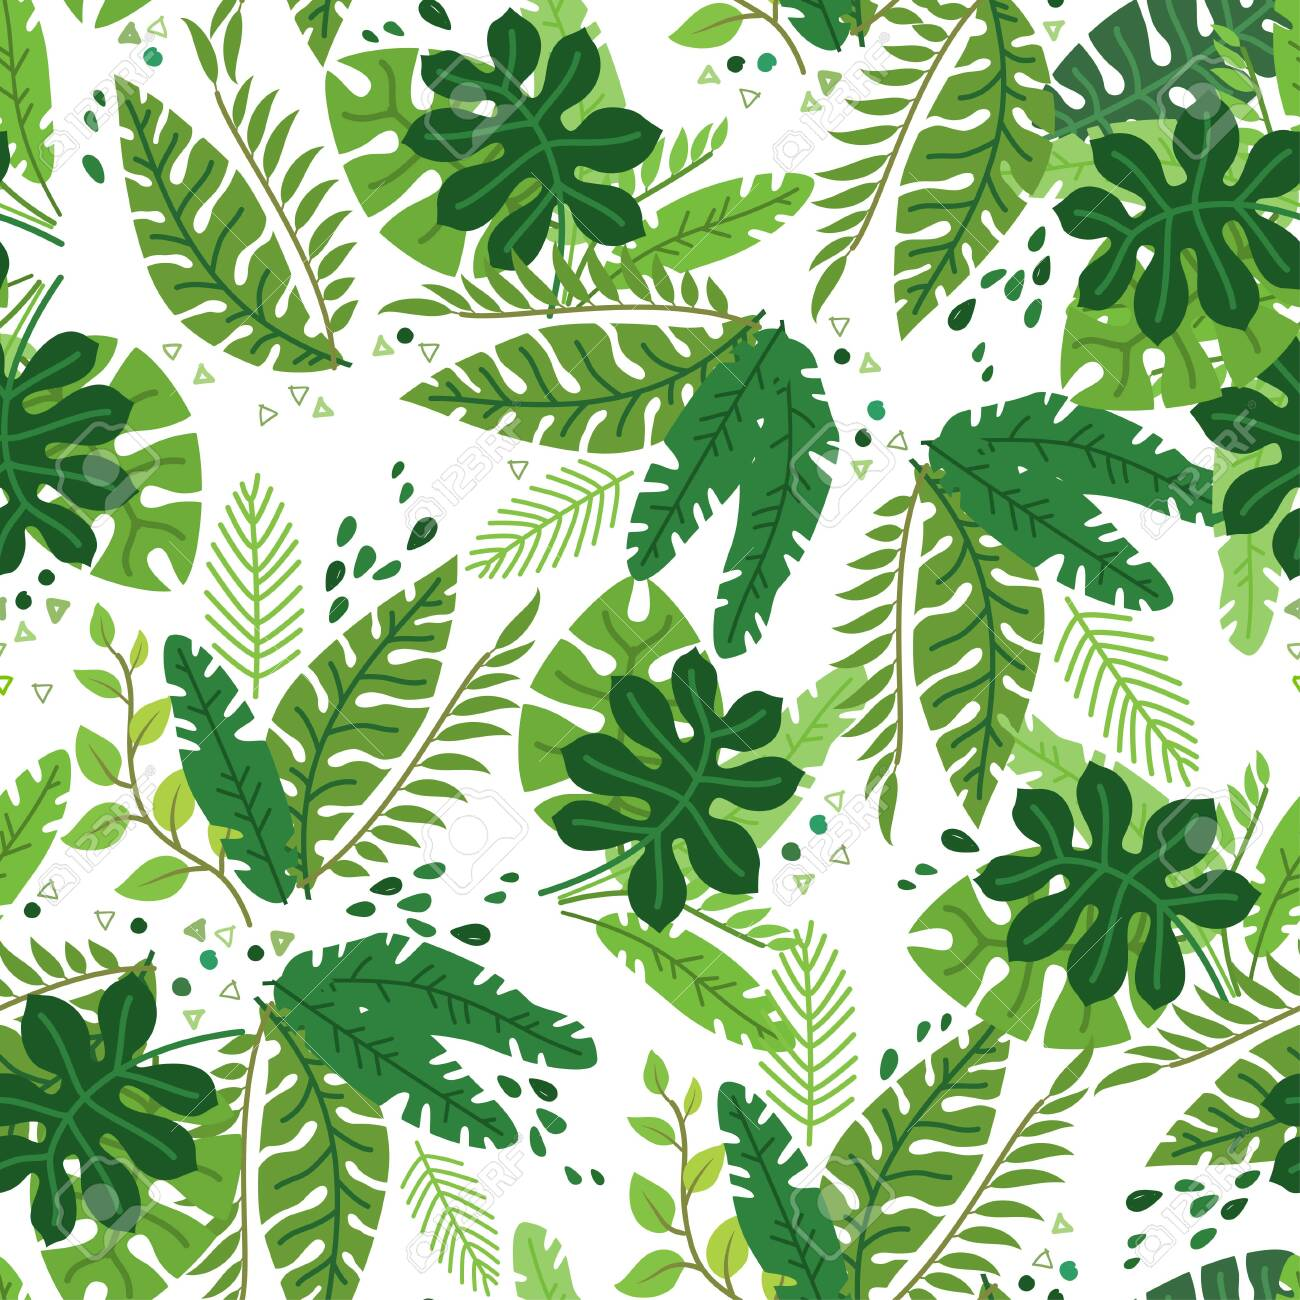 Tropical Leaves Vector Pattern Summer Equatorial Rainforest Royalty Free Cliparts Vectors And Stock Illustration Image 123755687 Choose from over a million free vectors, clipart graphics, vector art images, design templates, and illustrations created by artists worldwide! tropical leaves vector pattern summer equatorial rainforest